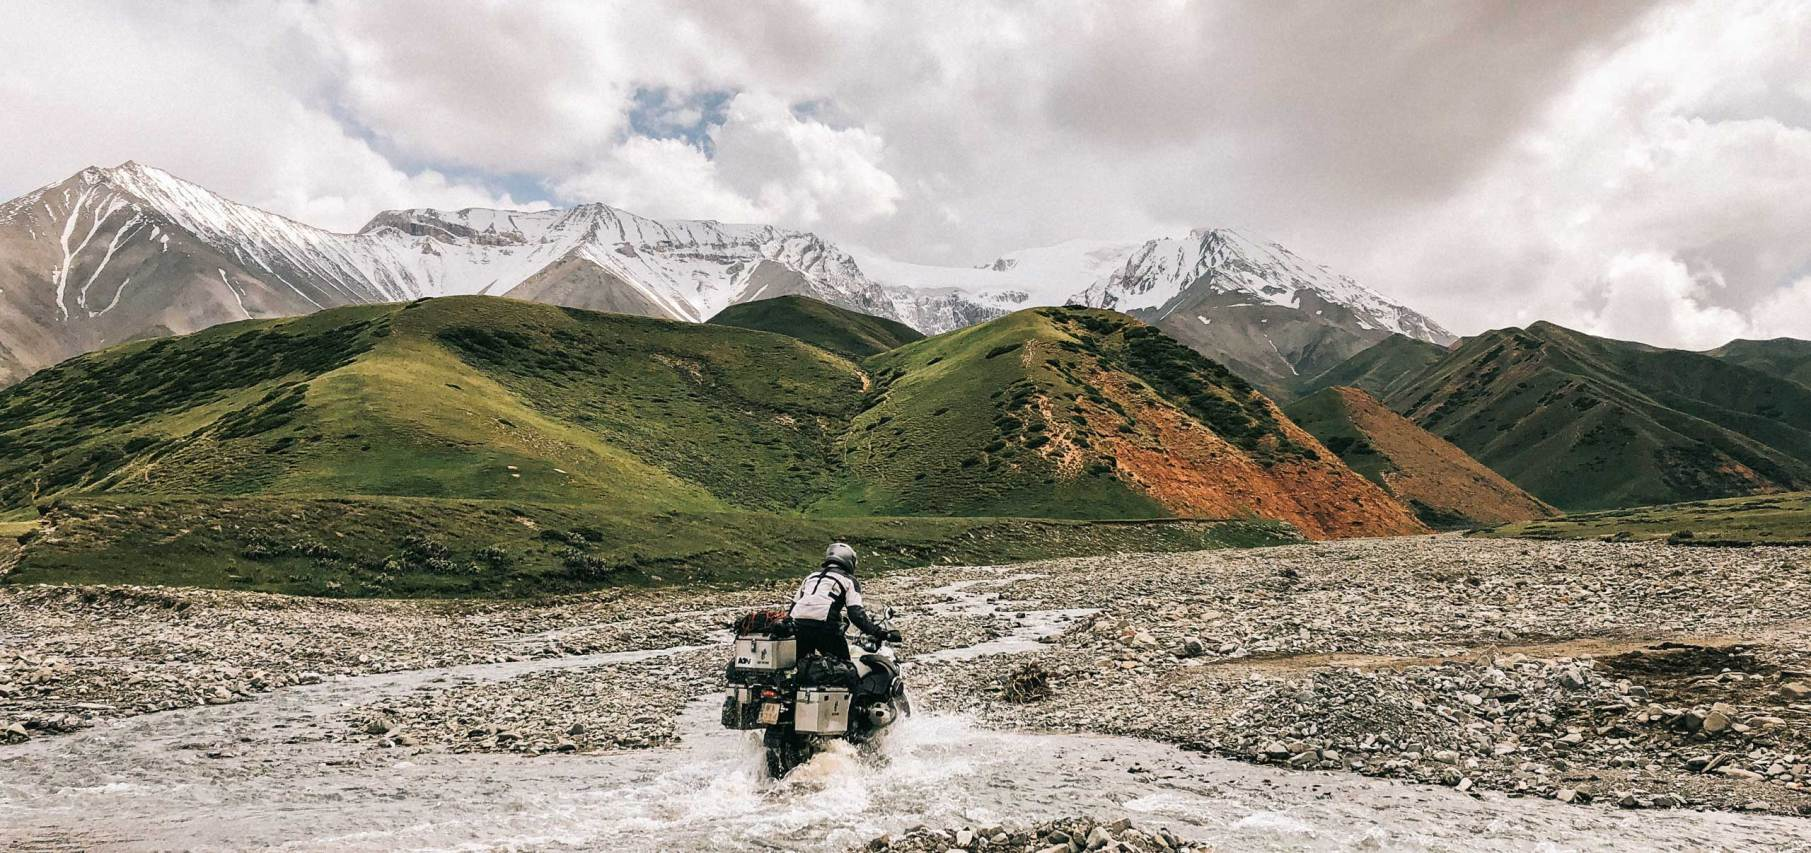 Love for Riding: A Kyrgyzstan and Tajikistan Motorcycle Adventure